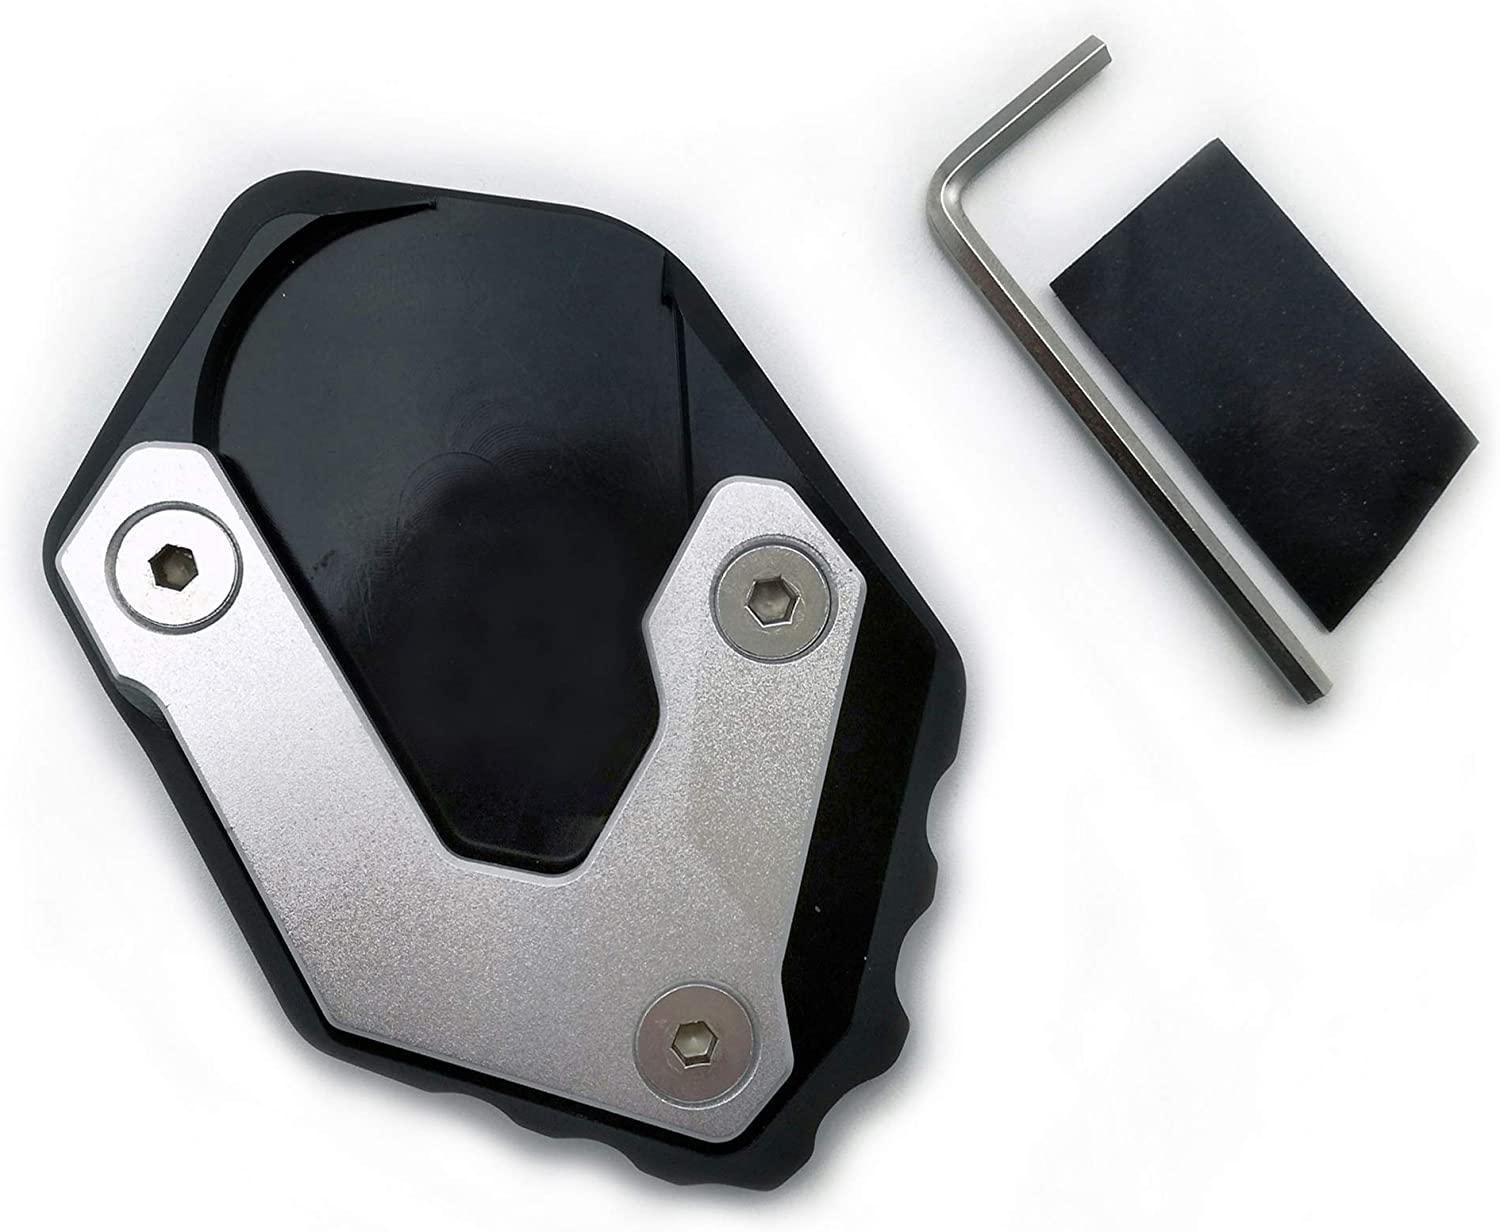 Motorcycle Side Stand Motorcycle Kickstand Foot Side Stand Extension Pad Support Plate for B/&M/&W R1250GS HP R 1250GS Adventure R1250 GSA 18-20 Kickstand Plate Color : Black